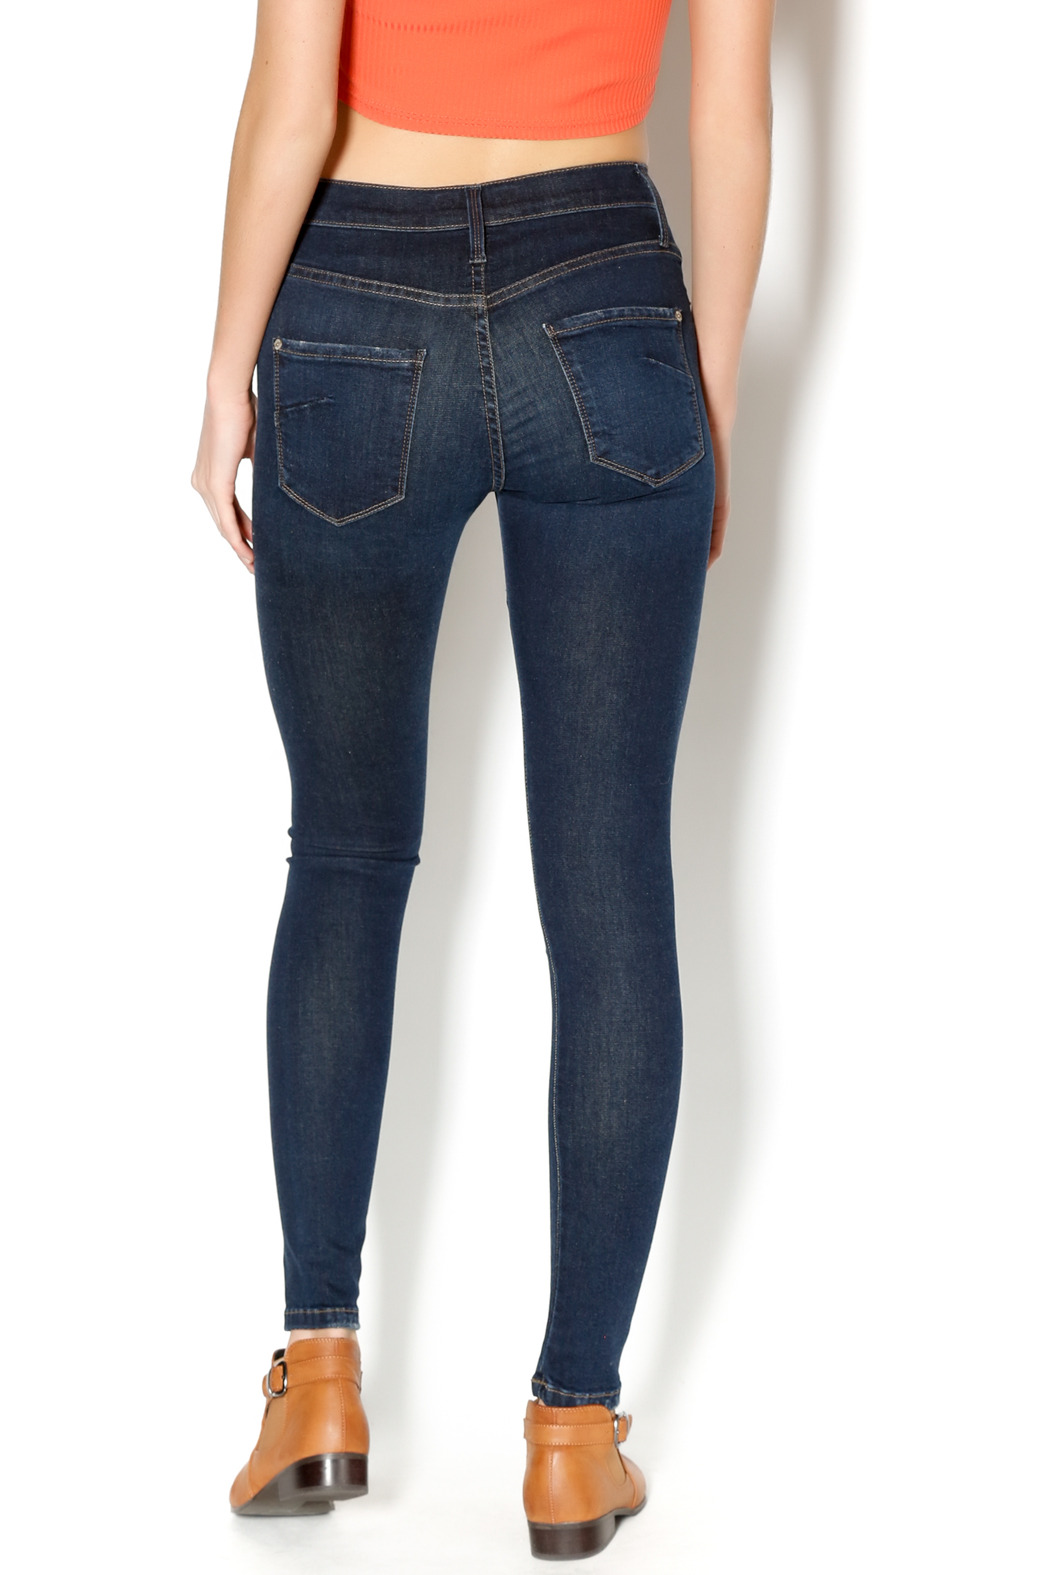 James Jeans Pirouette Twiggy Dancer Denim - Back Cropped Image